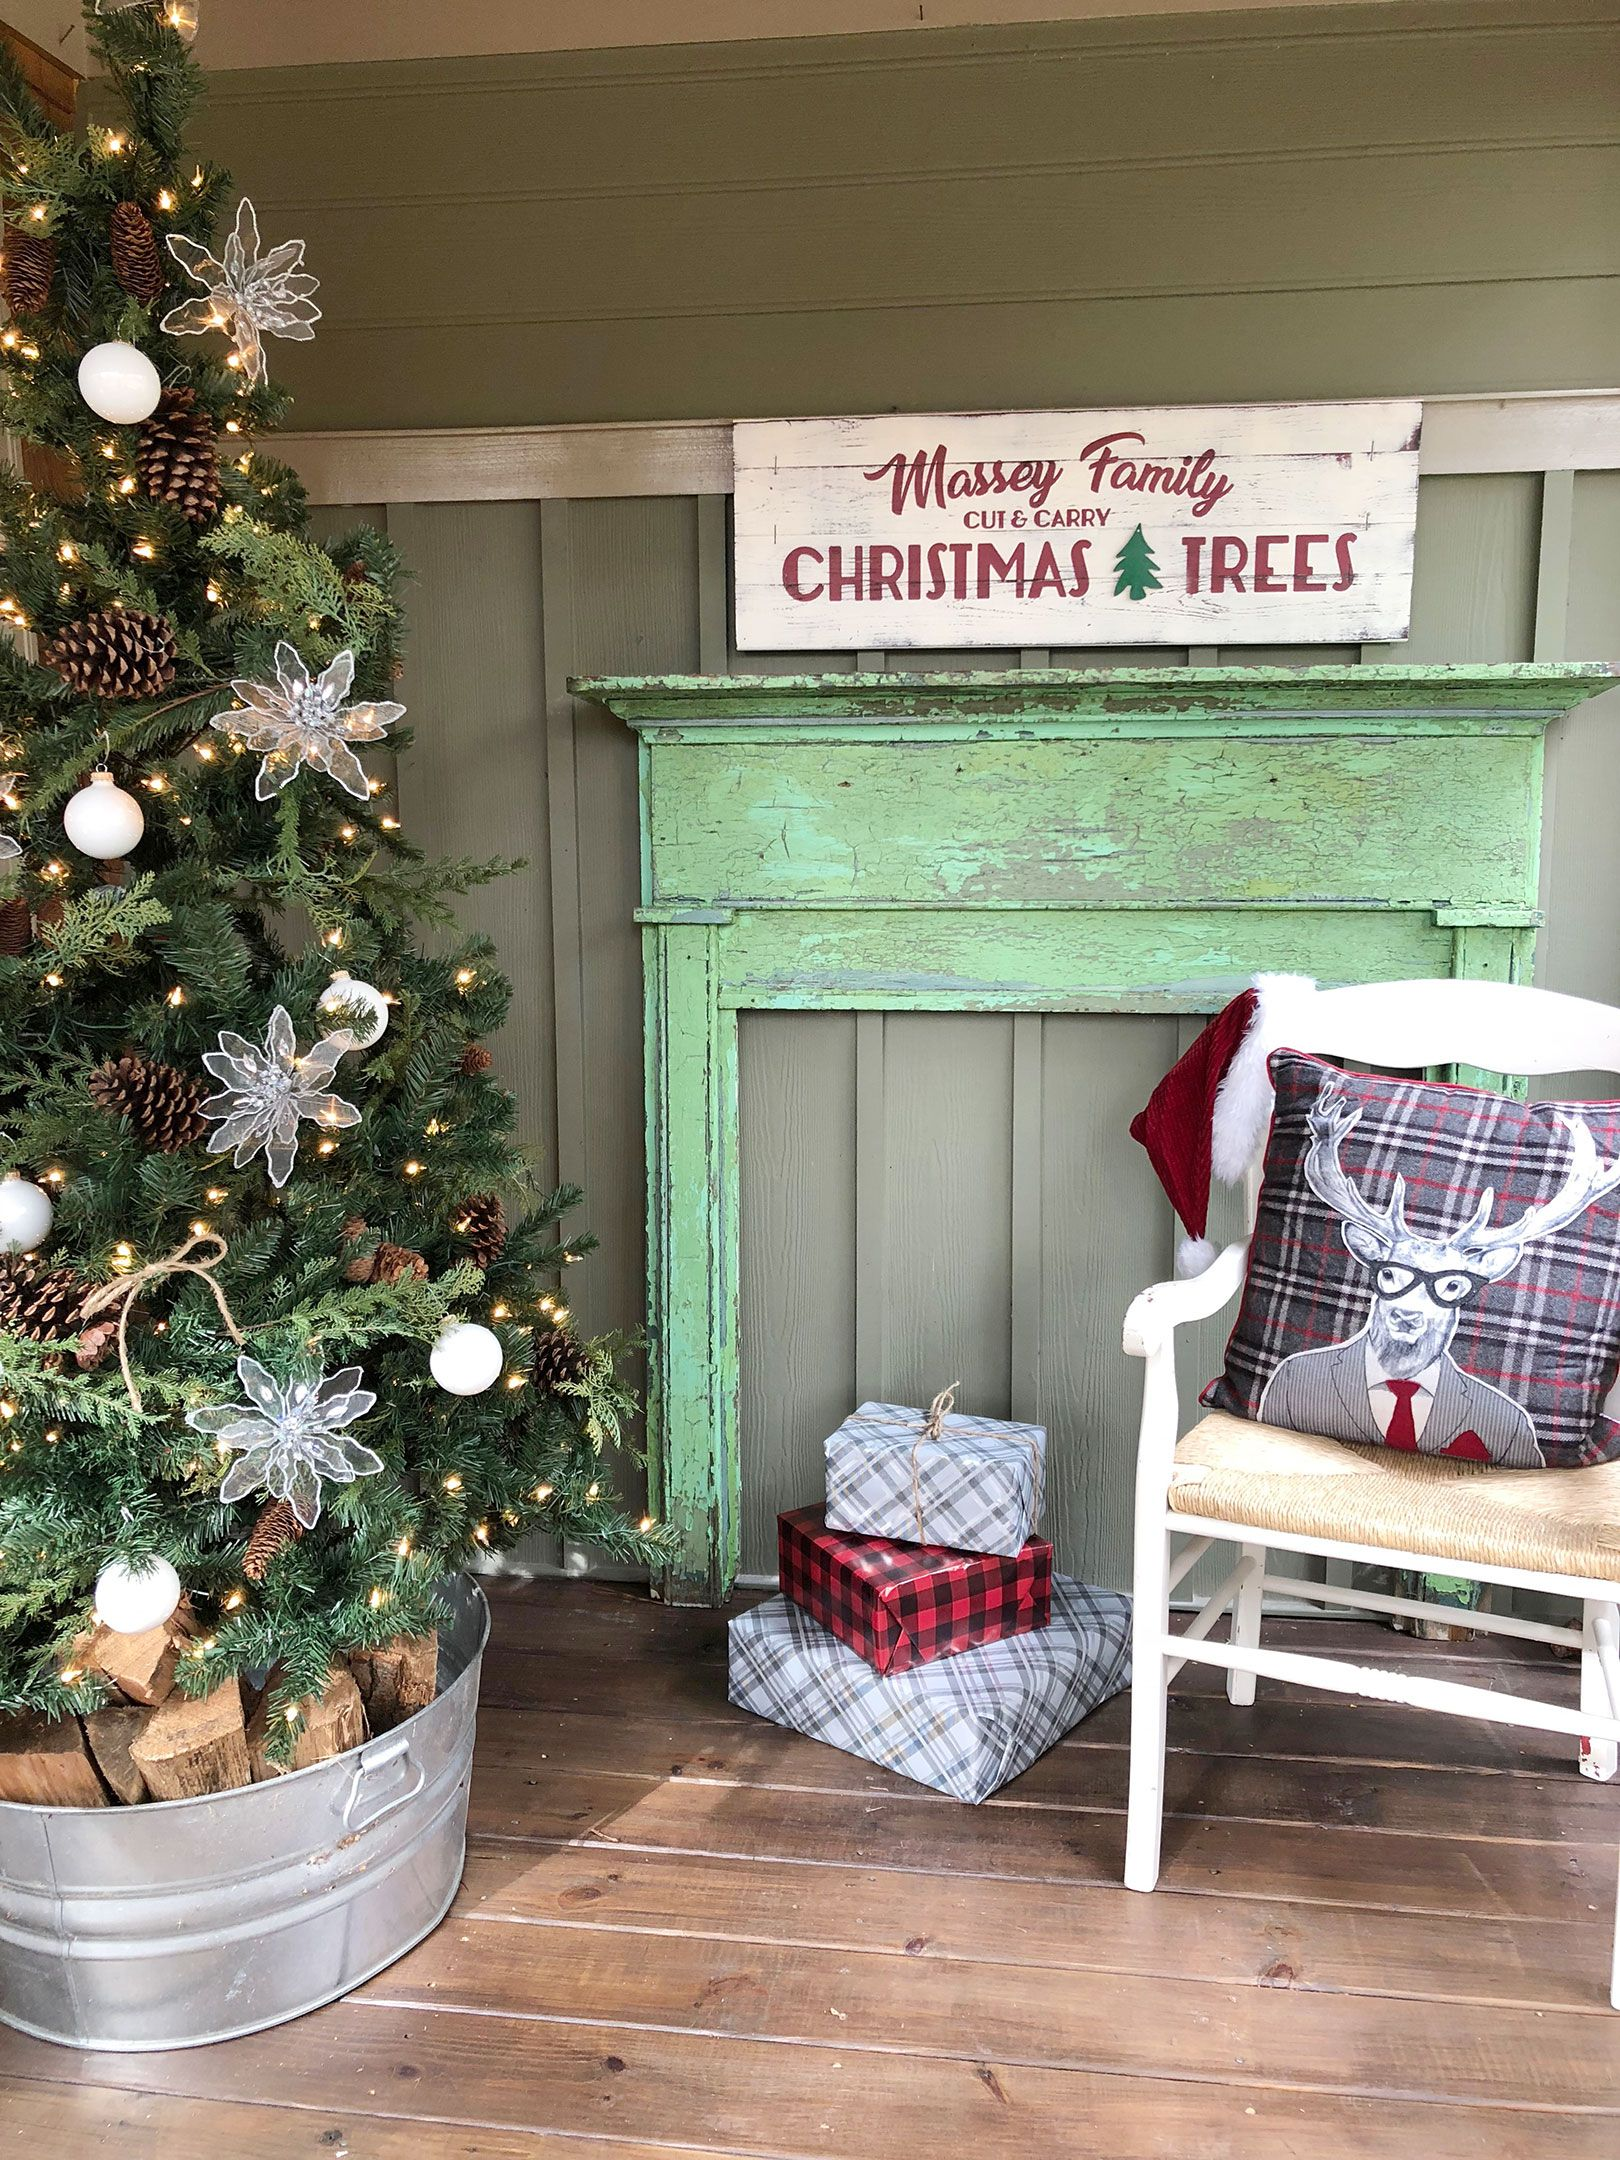 Christmas Trees for sale sign! Your own personalized